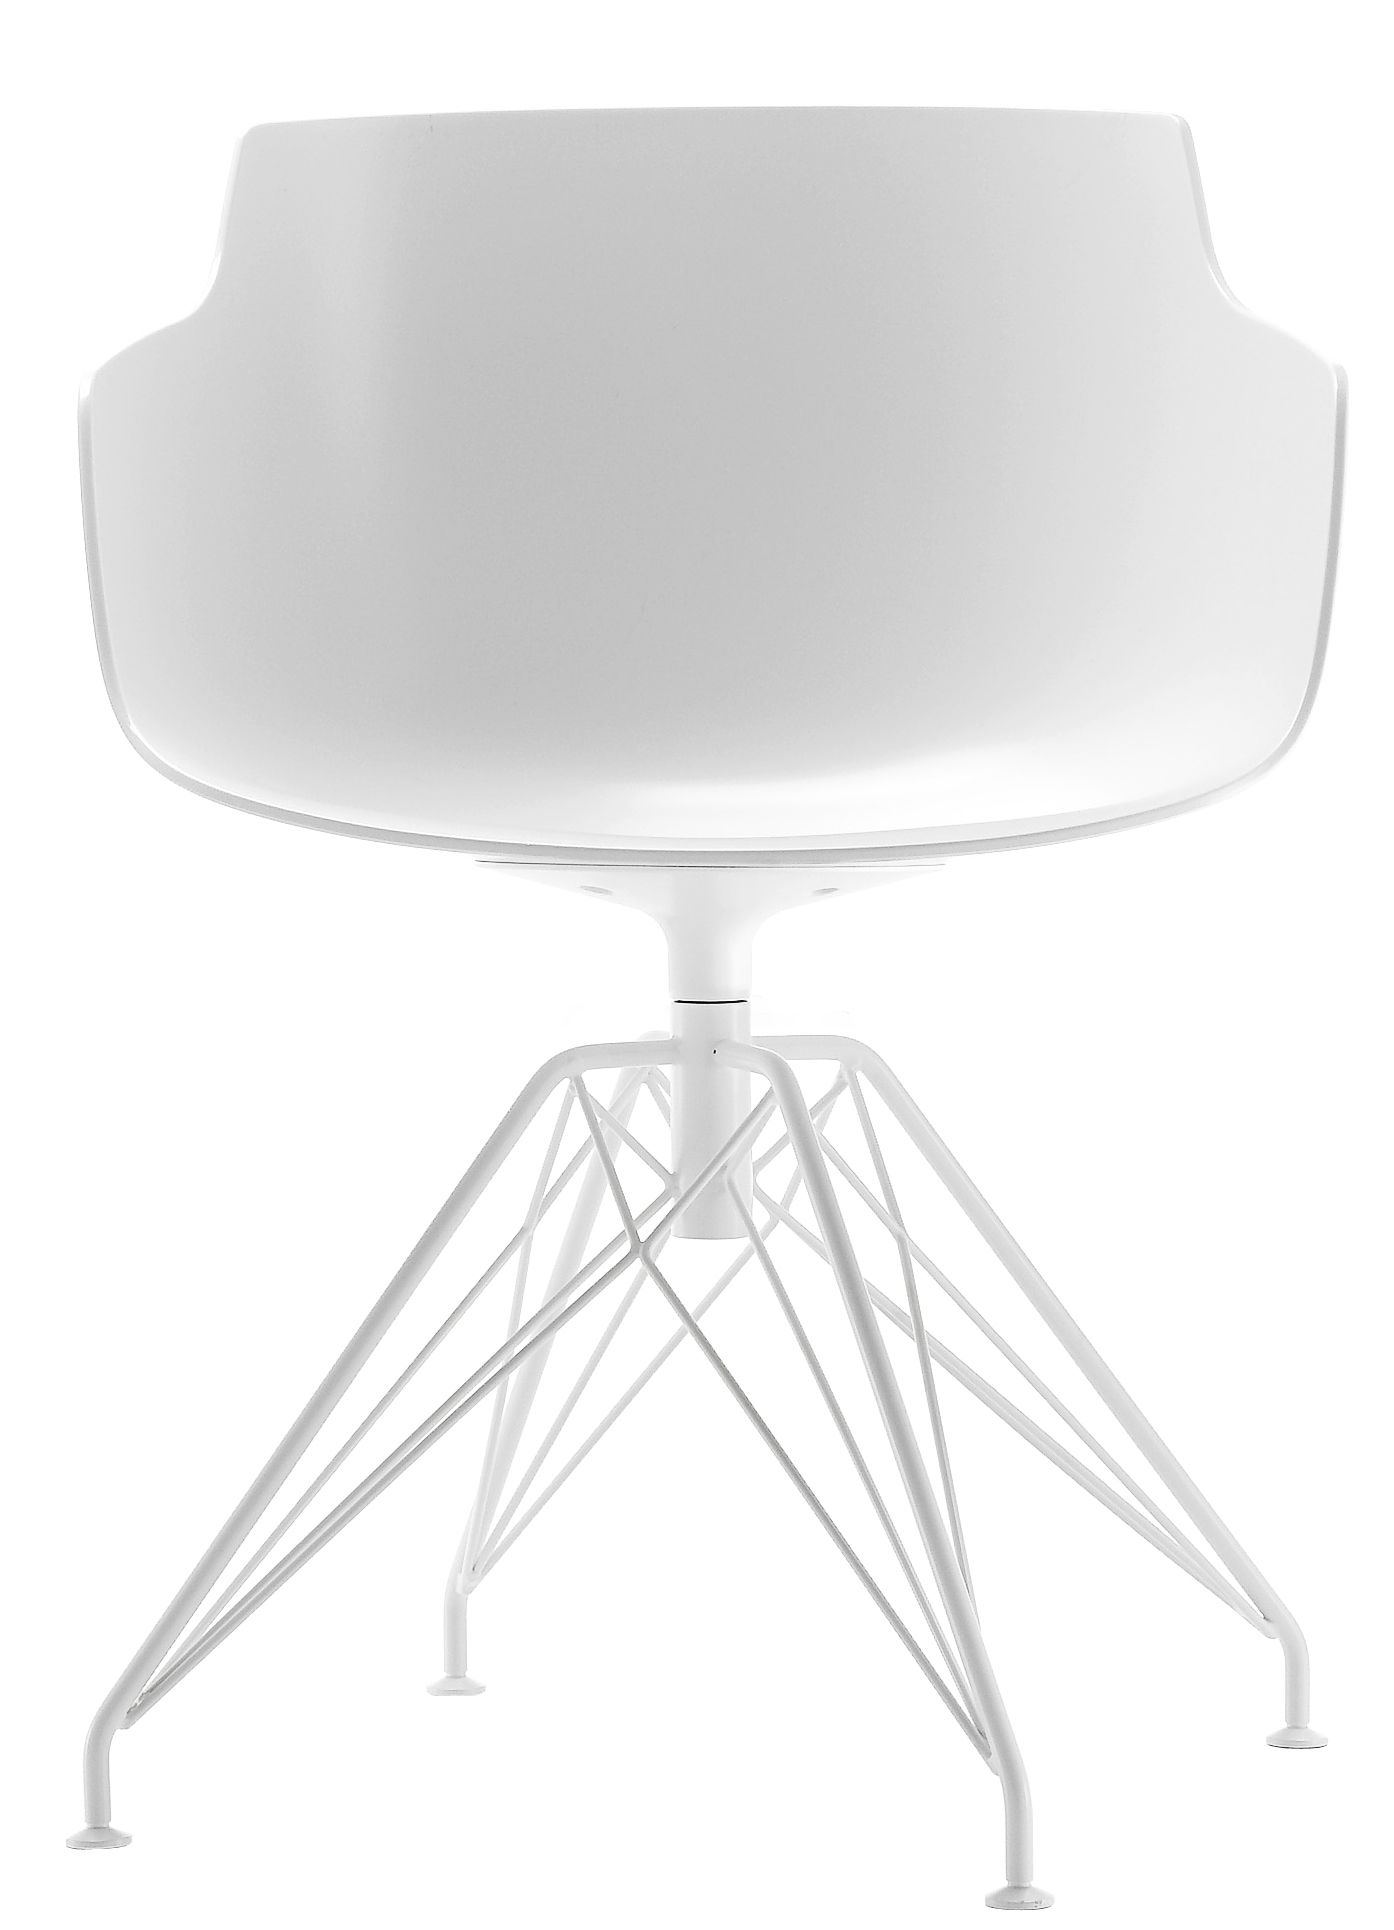 Furniture - Chairs - Flow Slim Swivel armchair - 4 LEM legs by MDF Italia - White seat / White leg - Painted steel, Polycarbonate